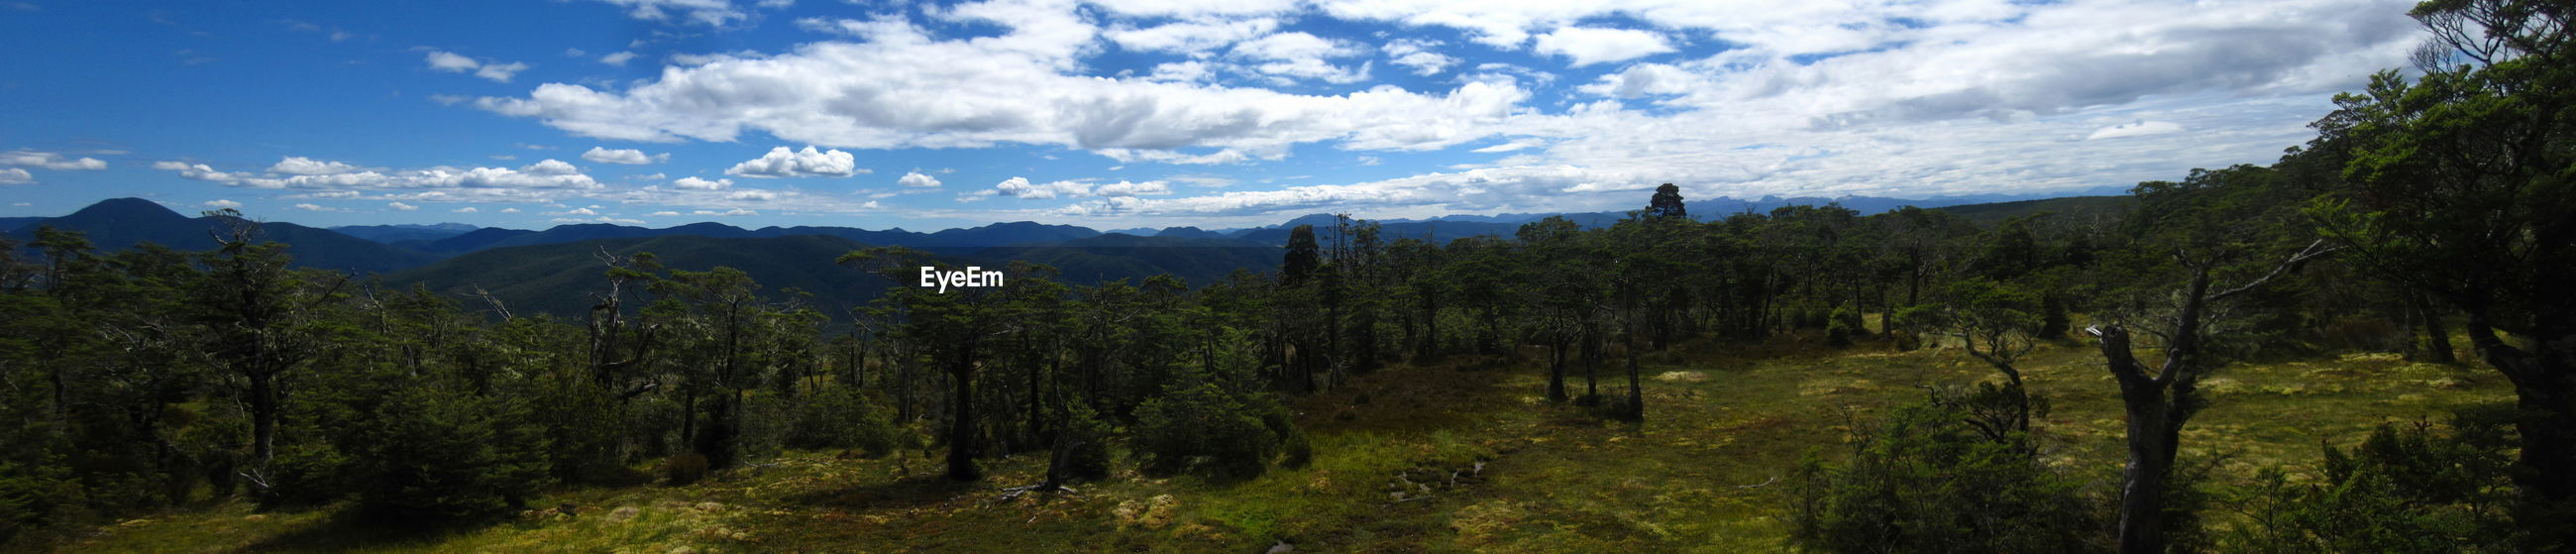 PANORAMIC VIEW OF TREES AND PLANTS AGAINST SKY